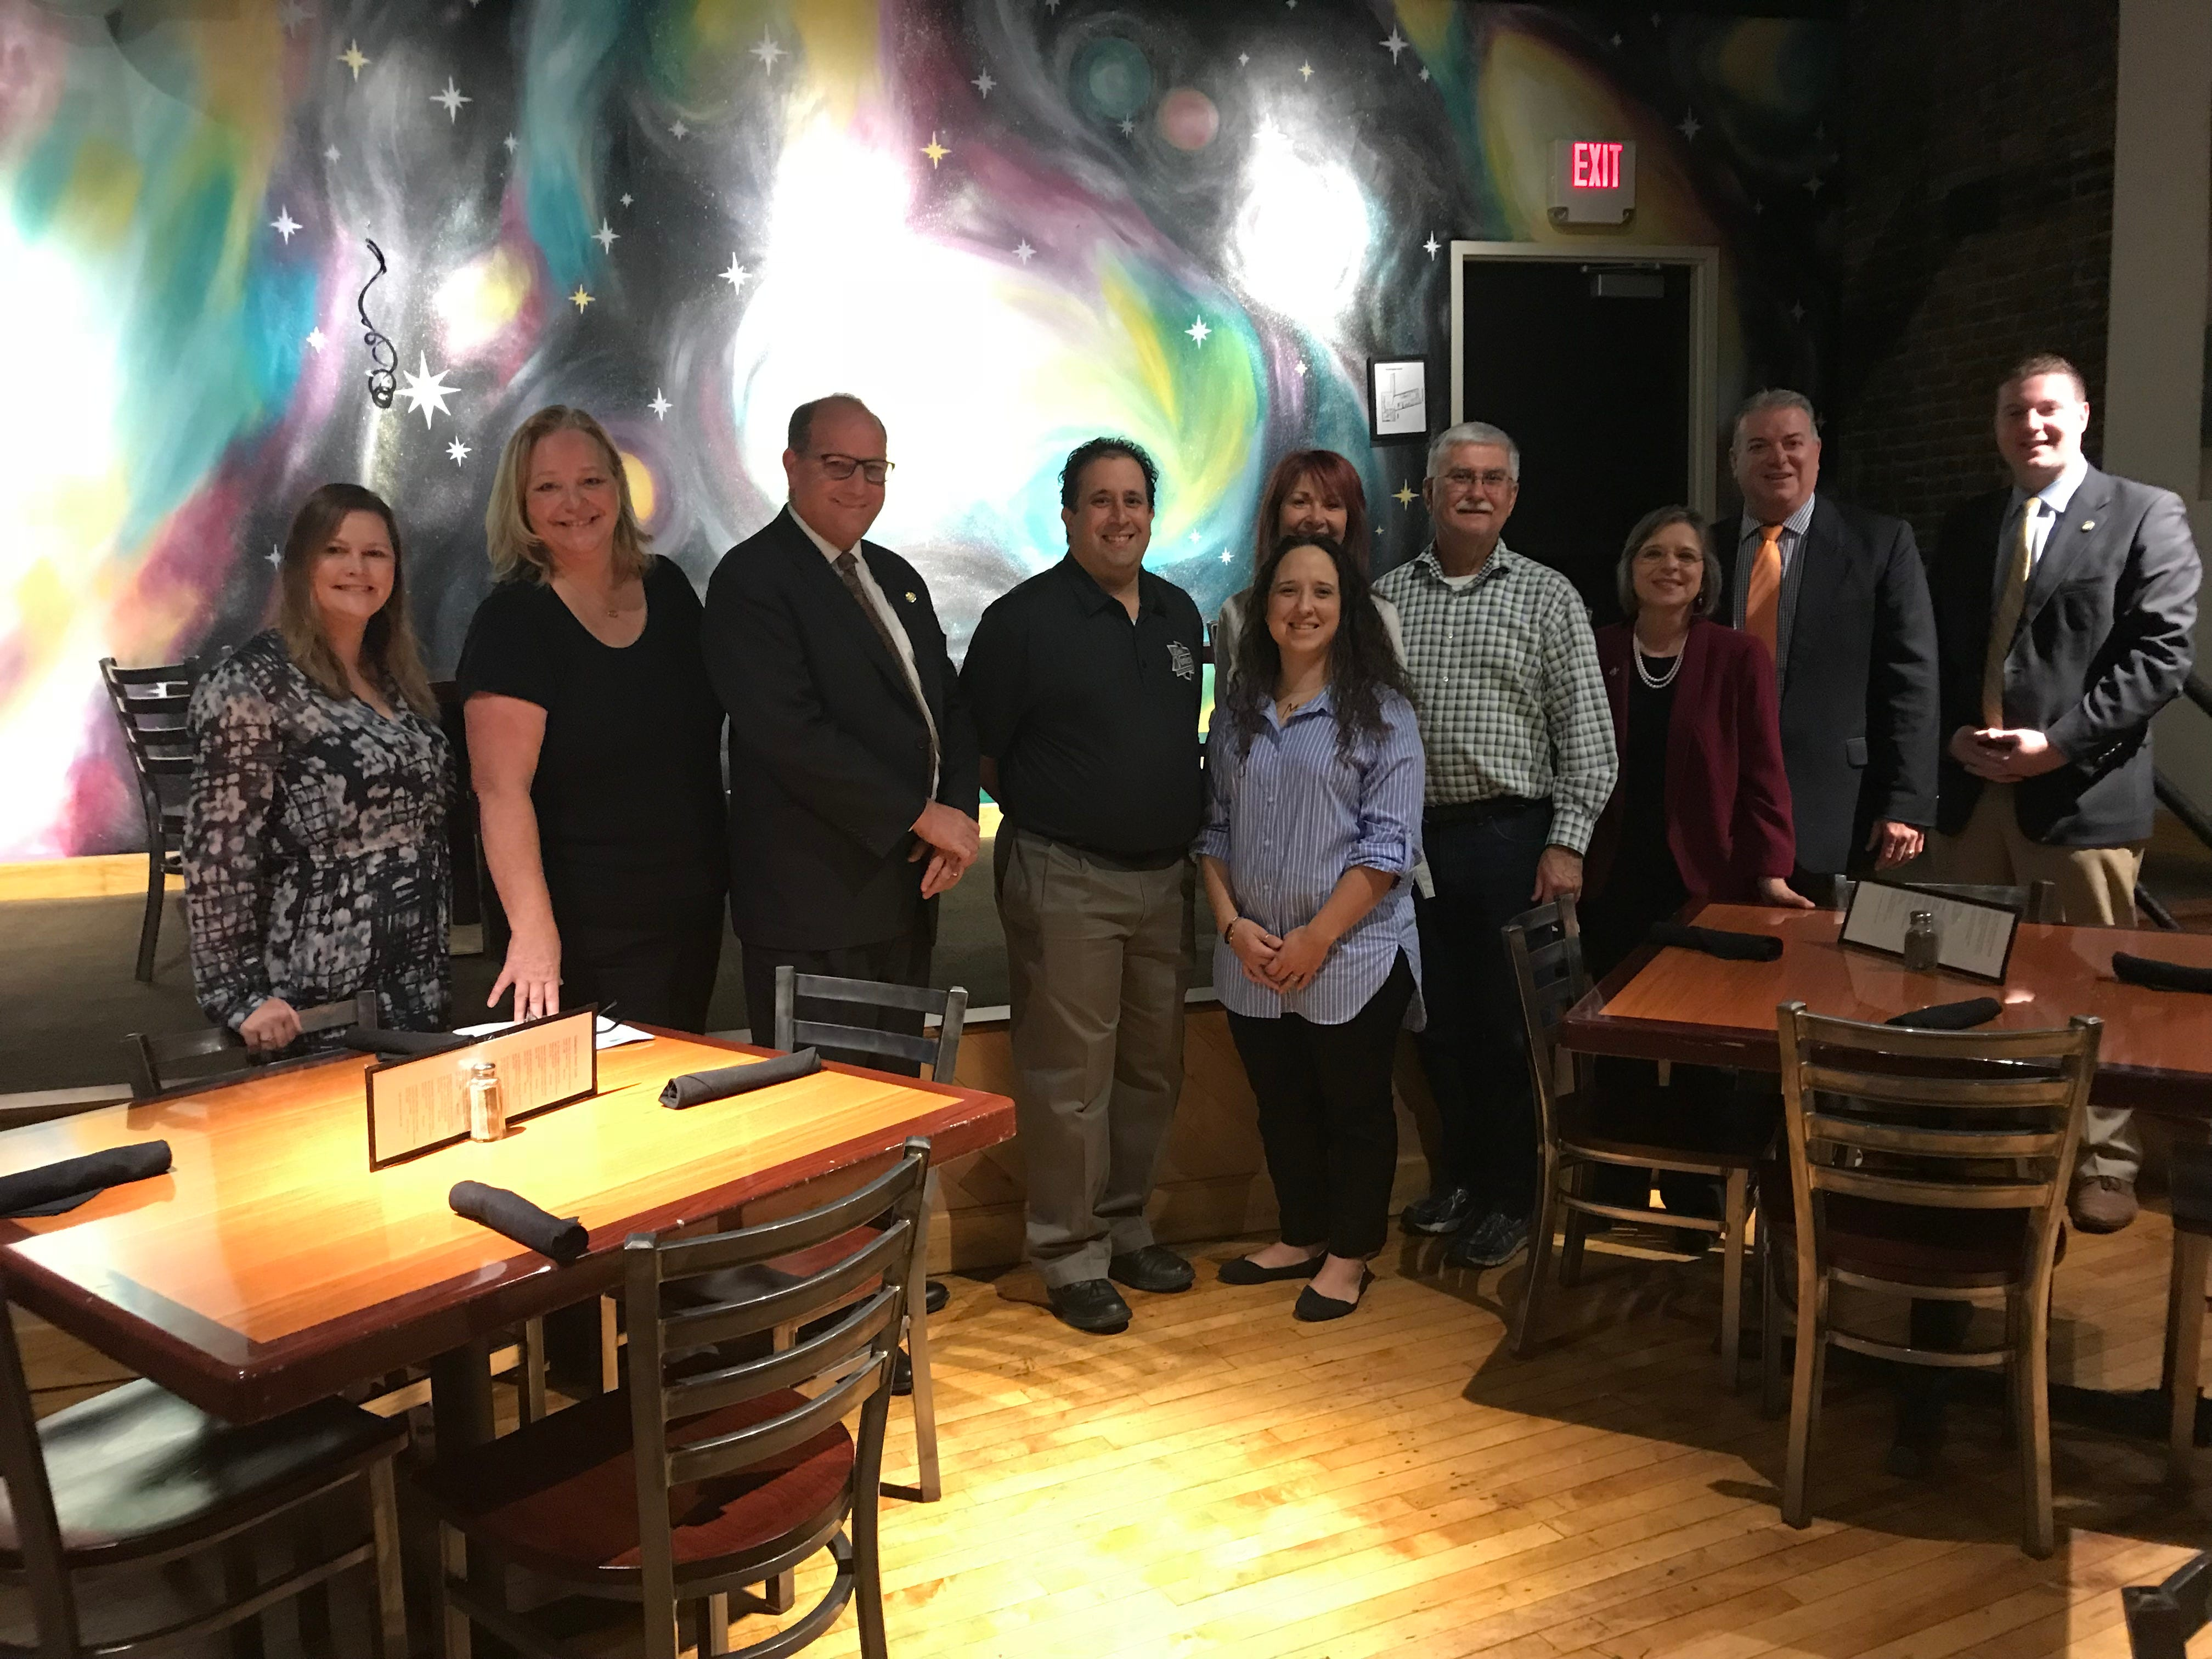 Participants of the Fall 2018 Binghamton Restuarant Week pose at Galaxy Brewing Company on Oct. 4.